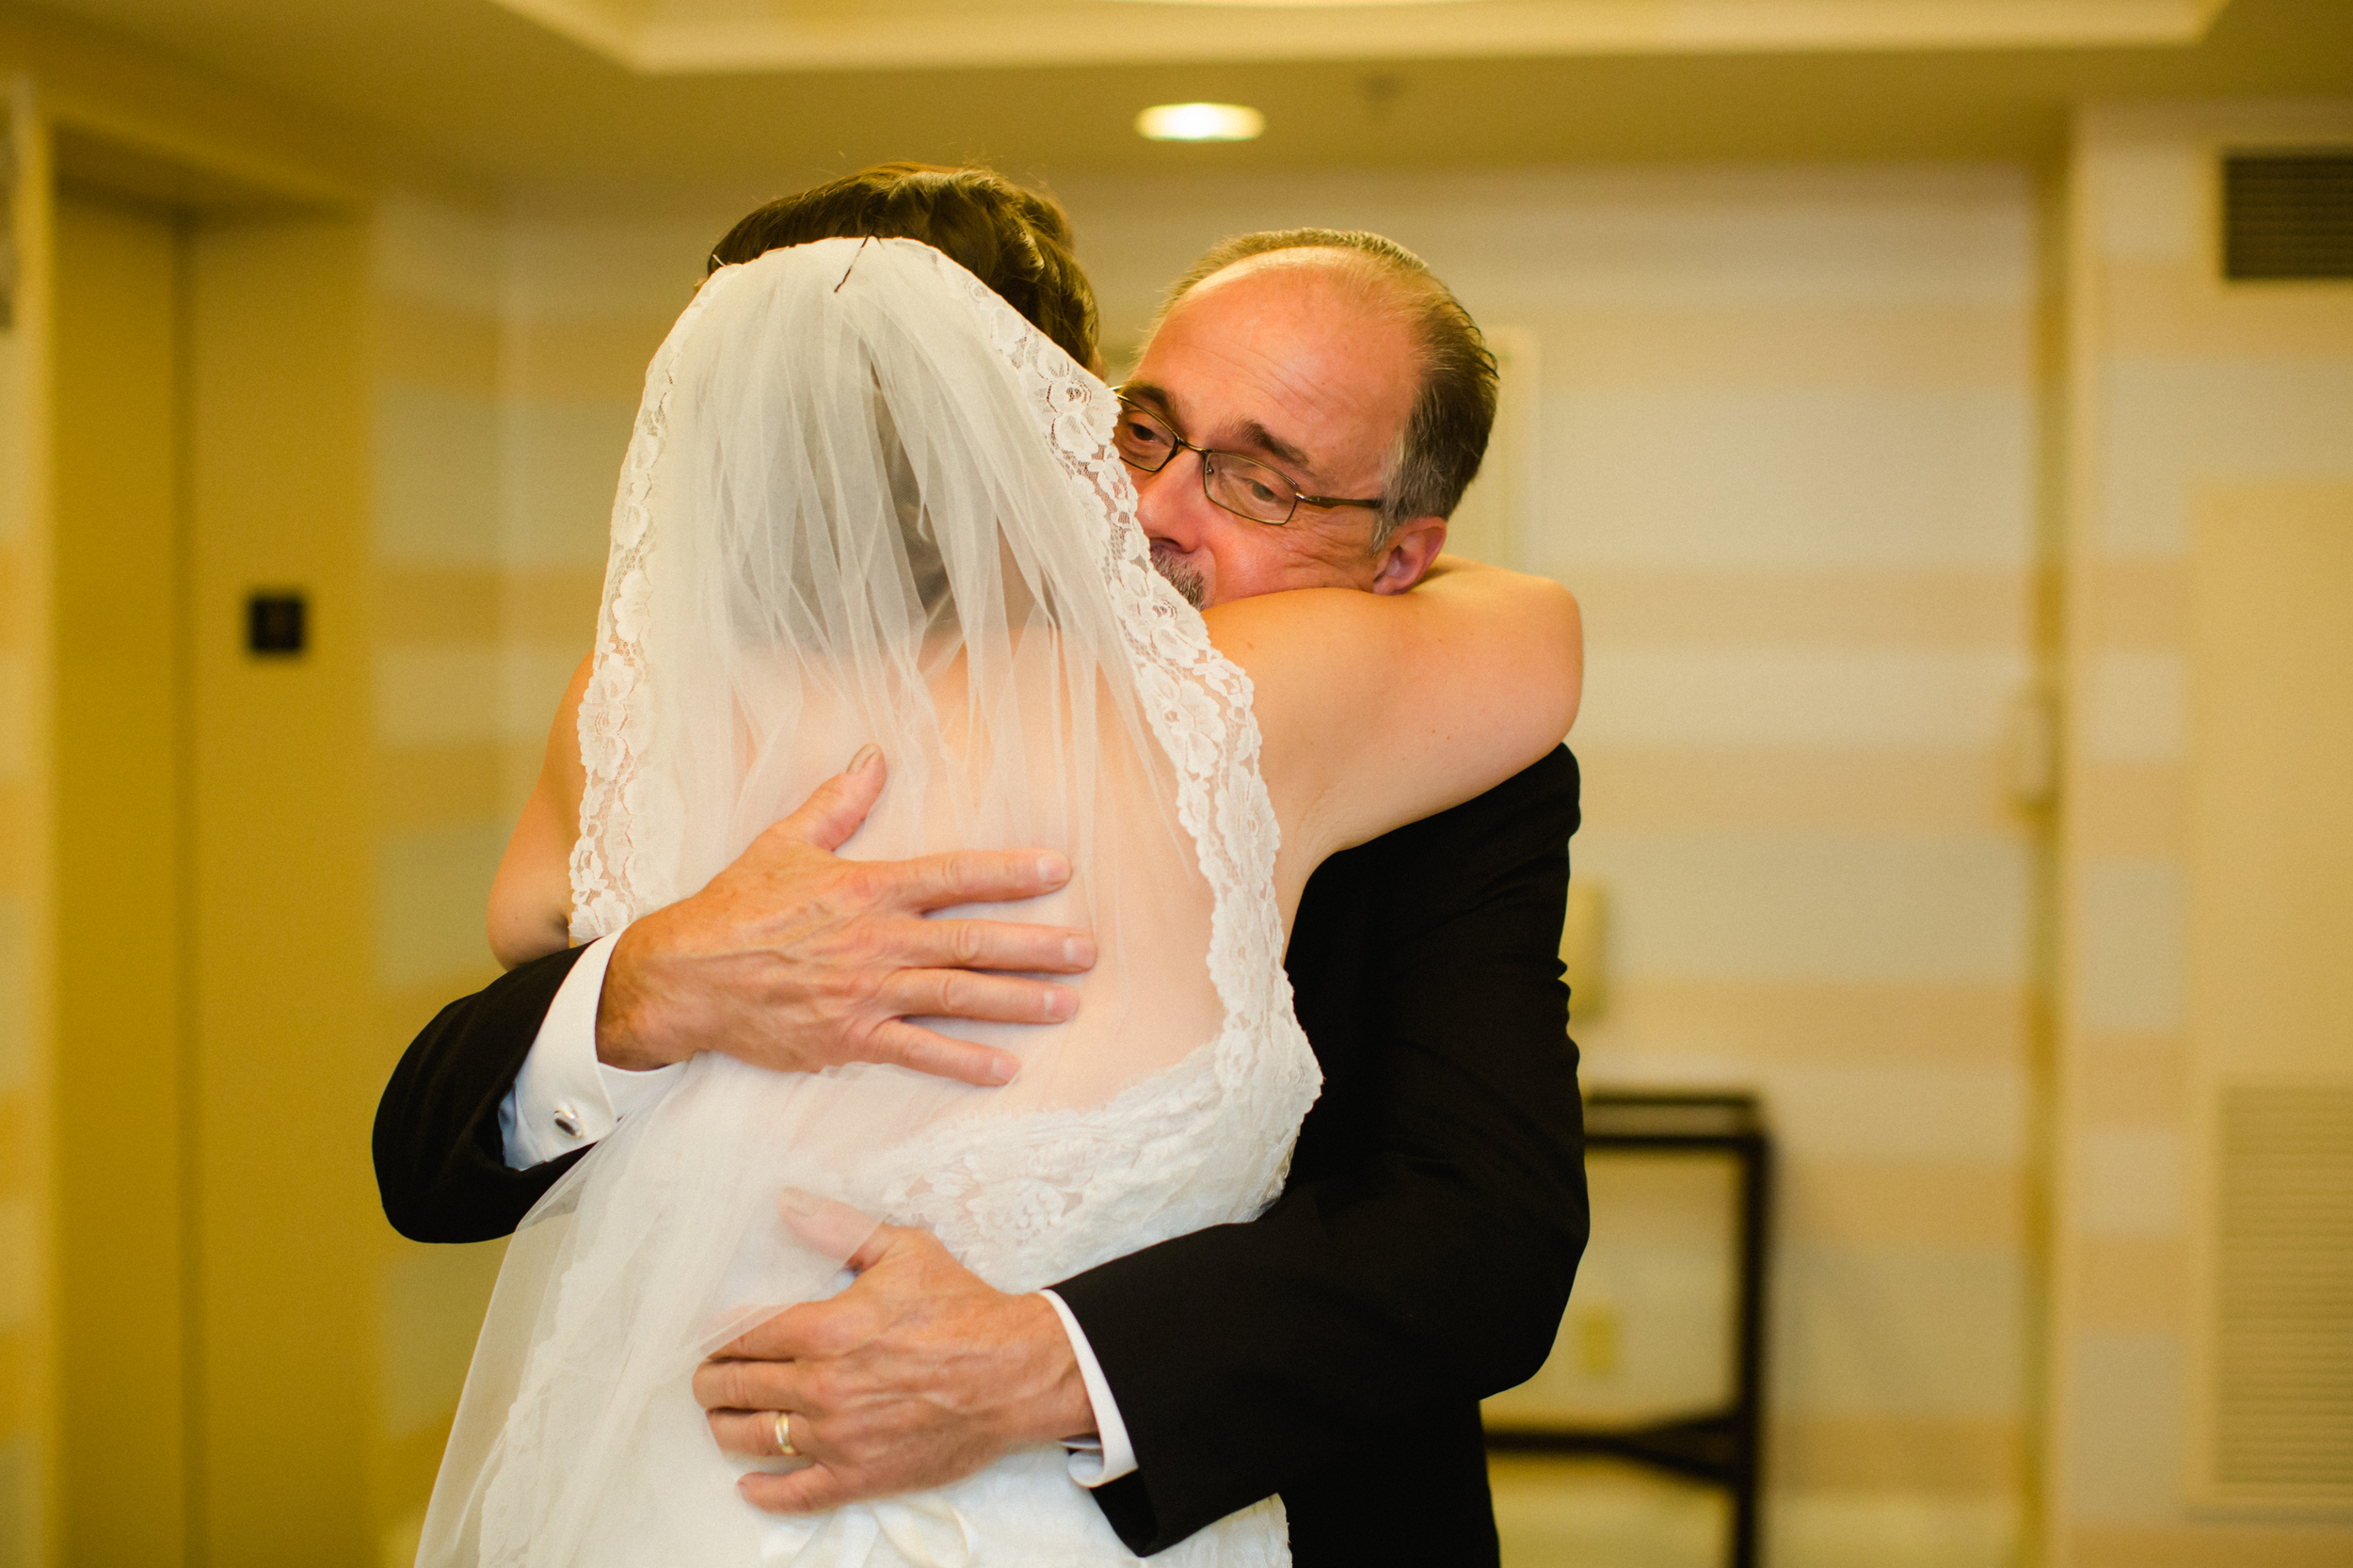 Vness_Photography_Wedding_Photographer_Washington-DC_Fish_Wedding-189.JPG